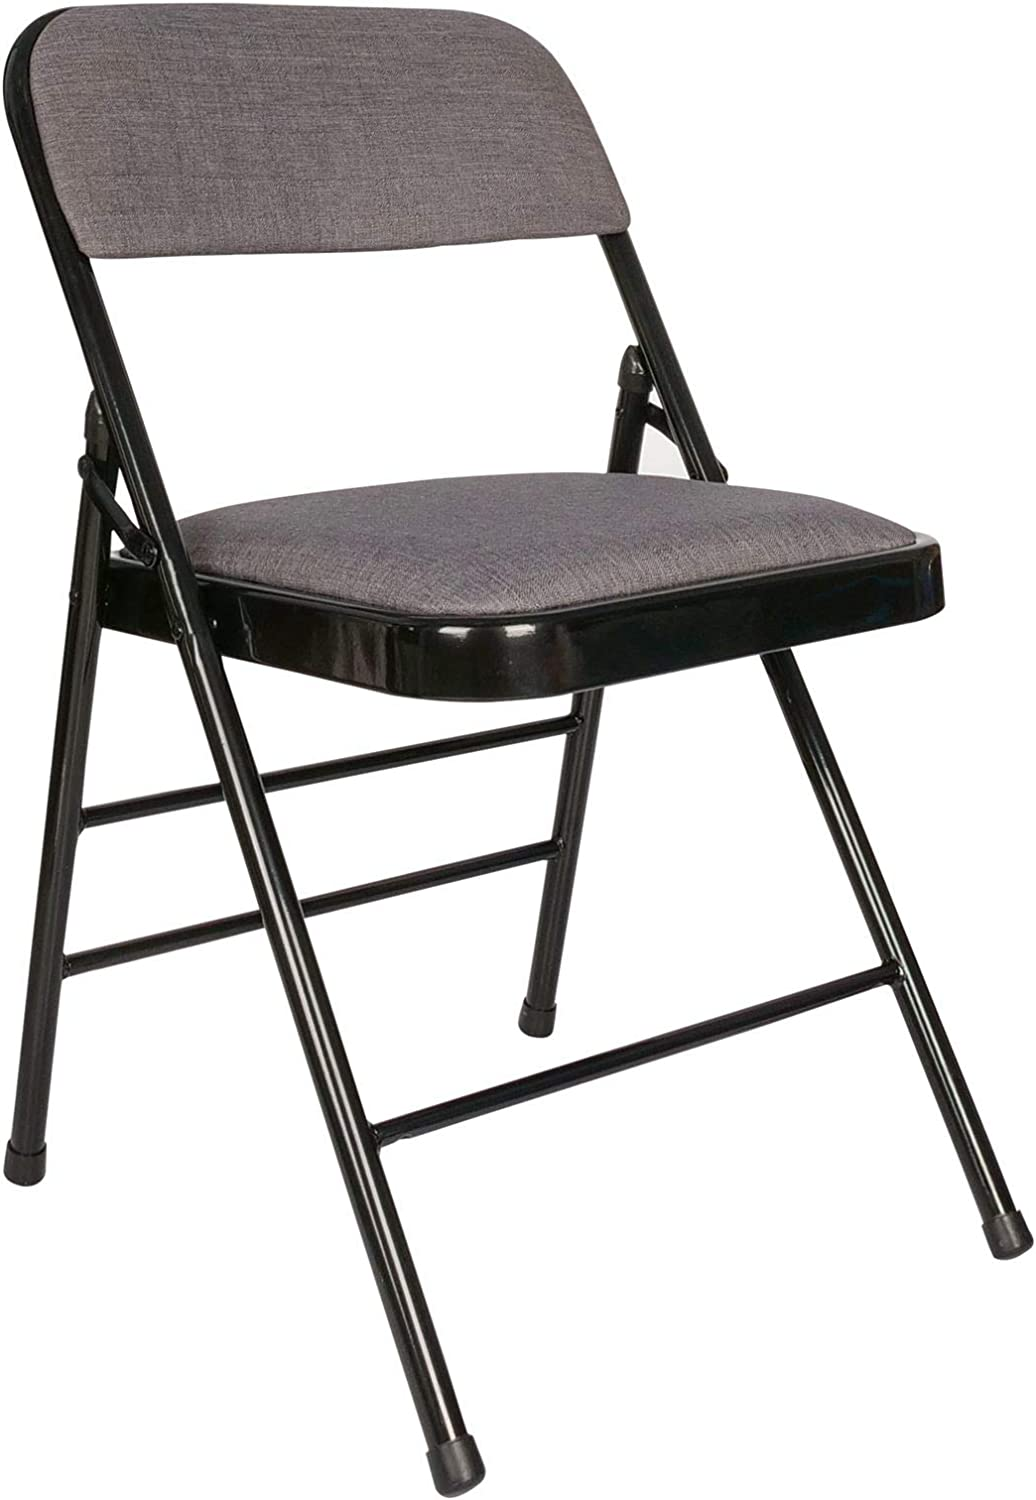 Cosy7 Nova Collection Deluxe Padded Fabric Folding Chairs Grey Set of 4 | Strong Steel Frame, Comfy Cushioned Seat, Foldable & Easy Store Away | For